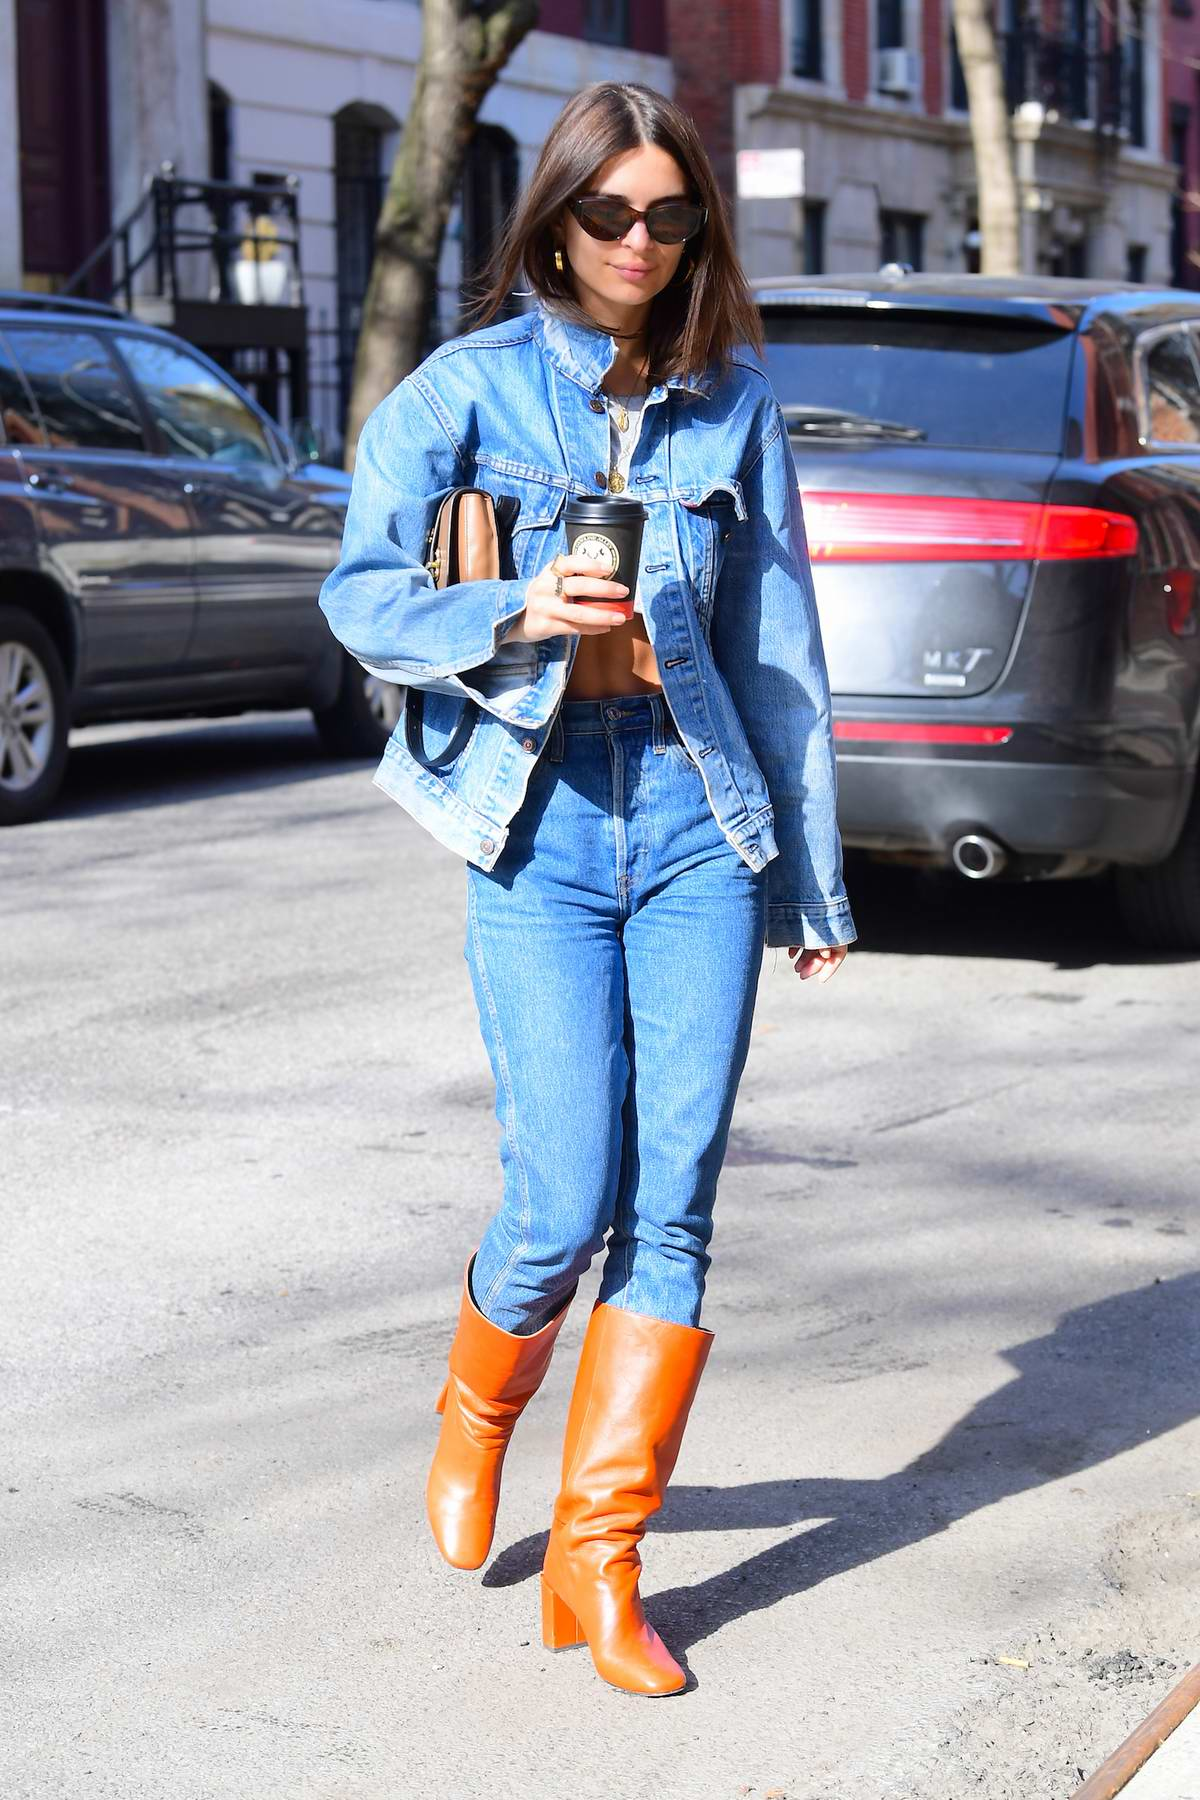 Emily Ratajkowski rocks an all denim look with knee high leather boots during a coffee run with her husband Sebastian Bear-McClard in New York City